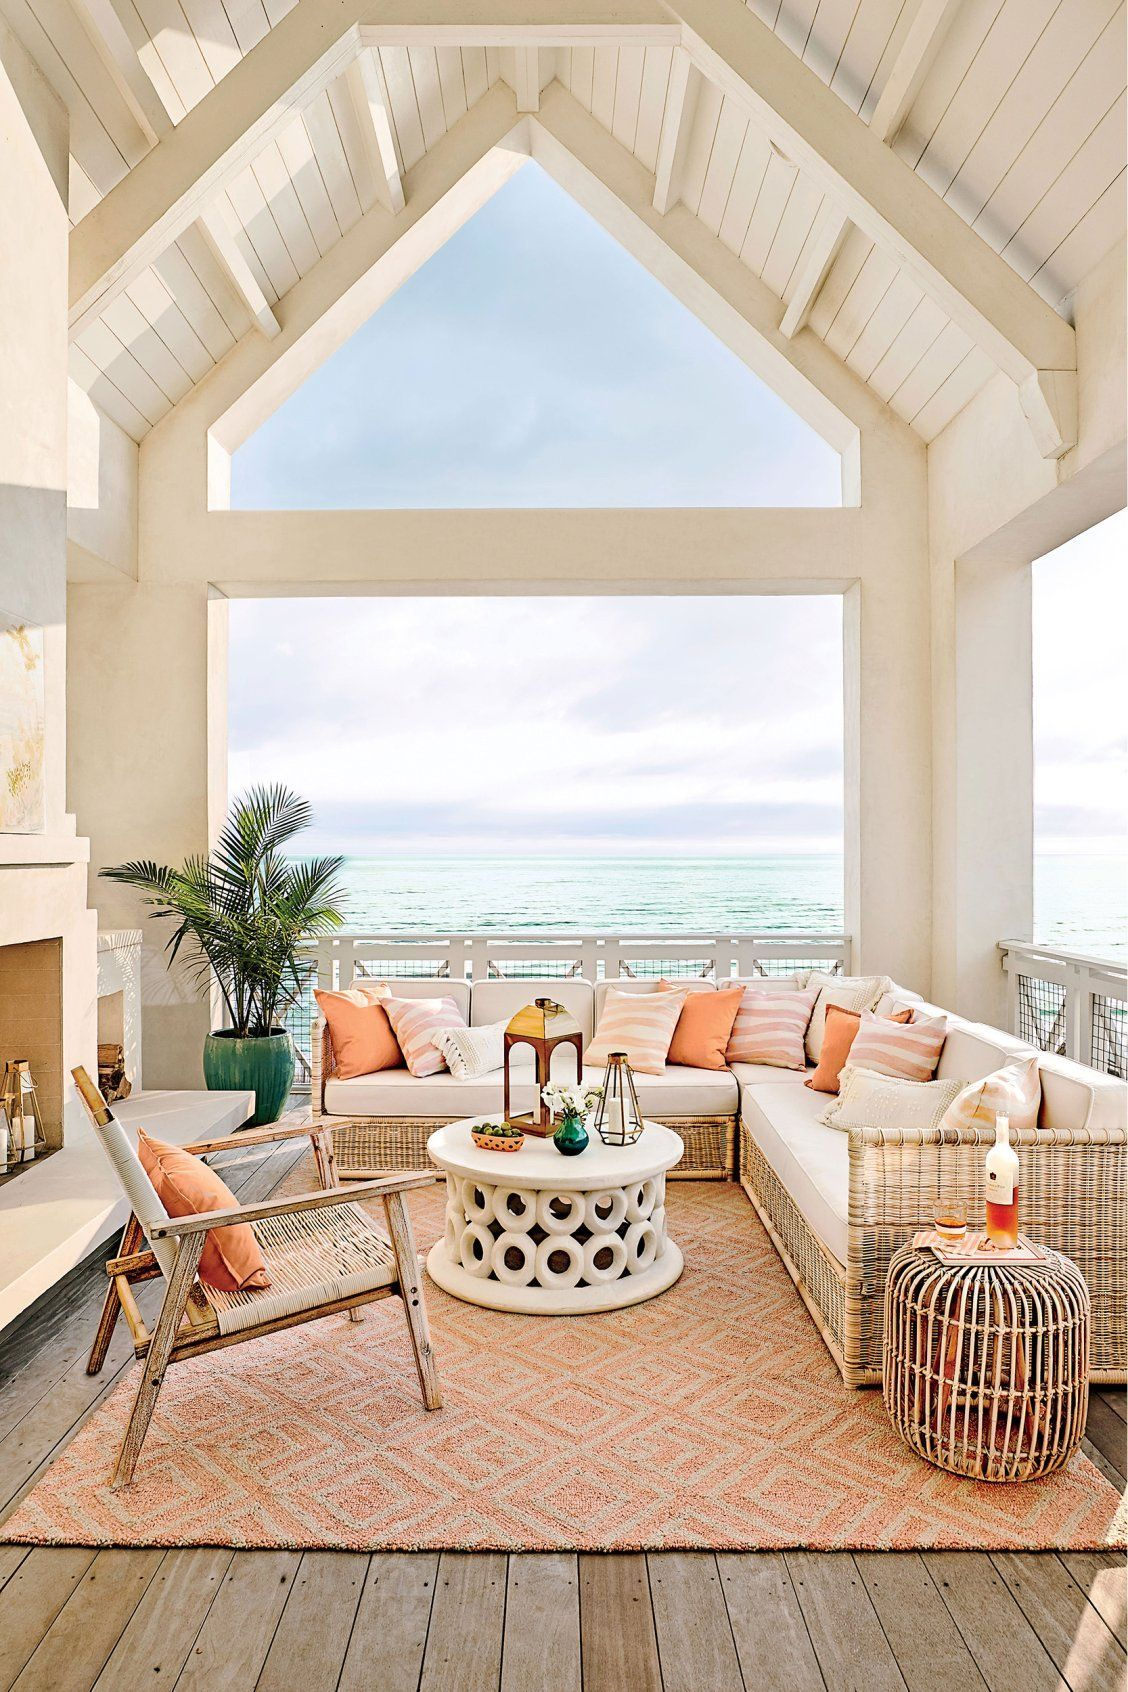 Trend alert! This will be the hottest color in outdoor design this summer.